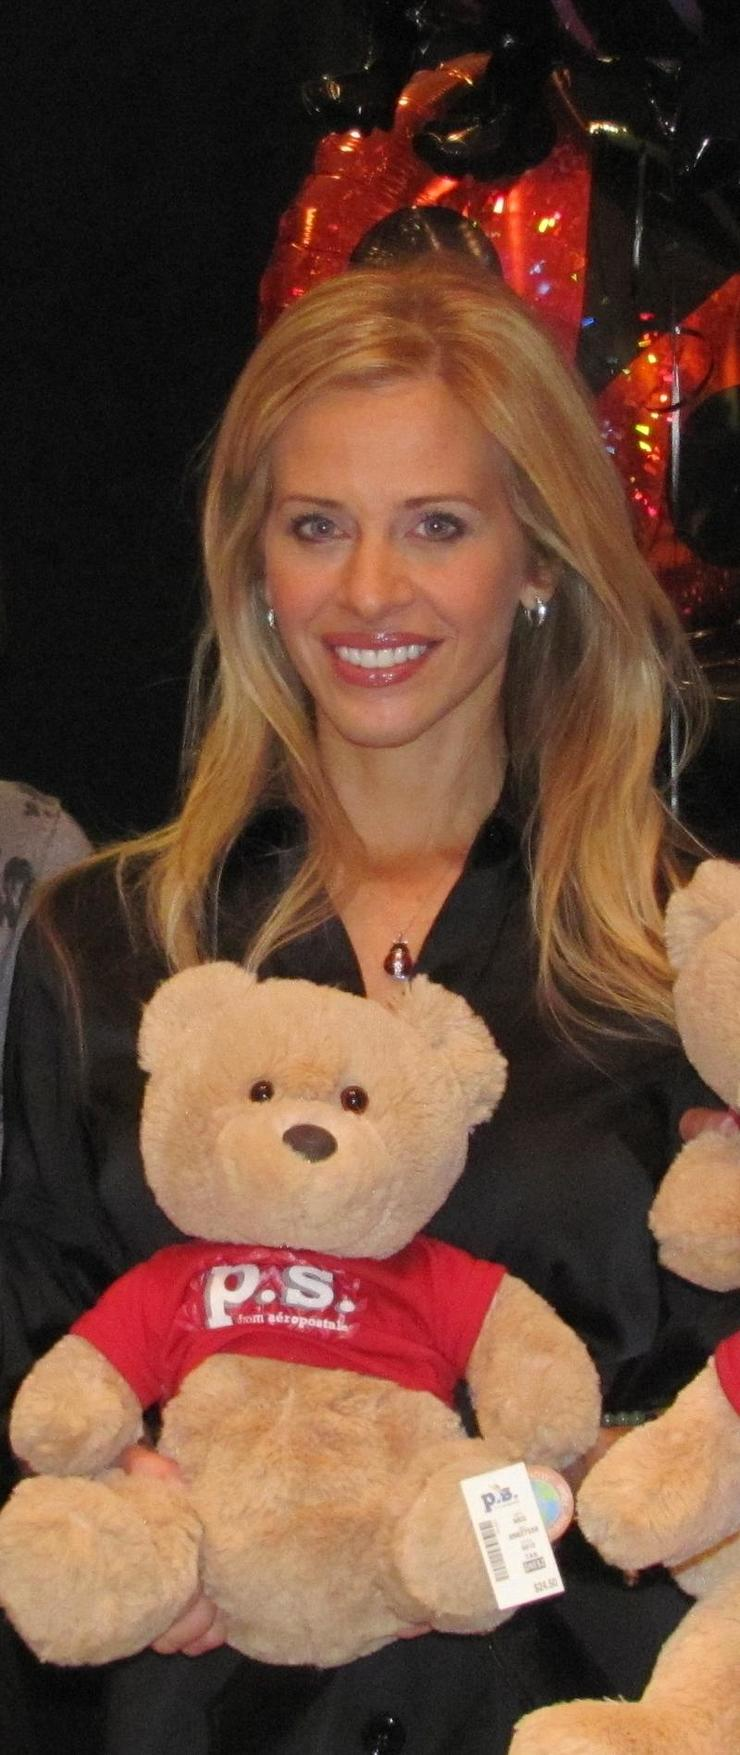 Dina Manzo of The Real Housewives of New Jersey  & Project Ladybug with one of the 386 teddy bears donated by P.S. Aeropostale